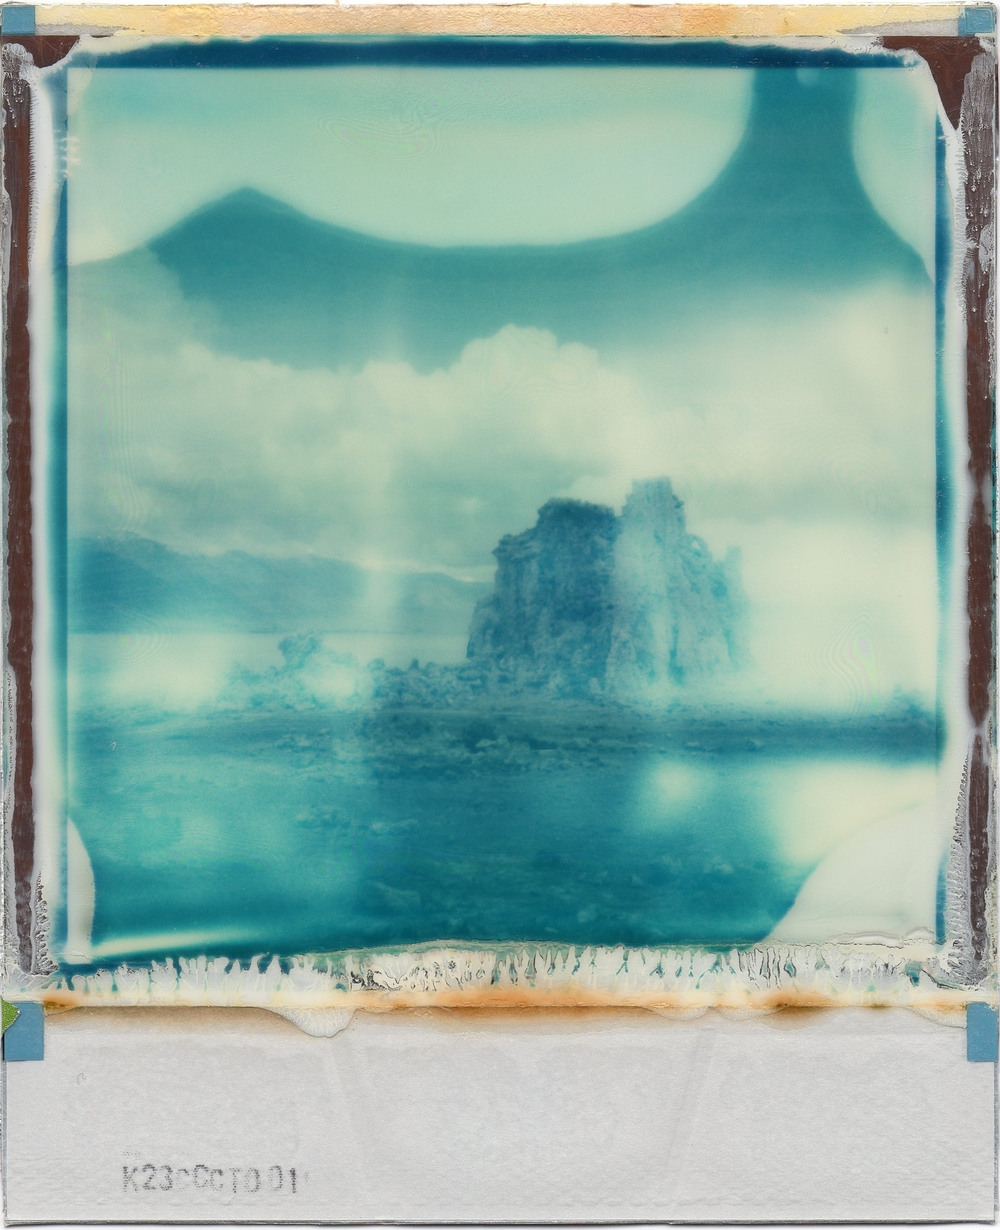 Into the Blue | Expired Impossible Poisoned Paradise 600 Film | Impossible I-1 | Julia Beyer